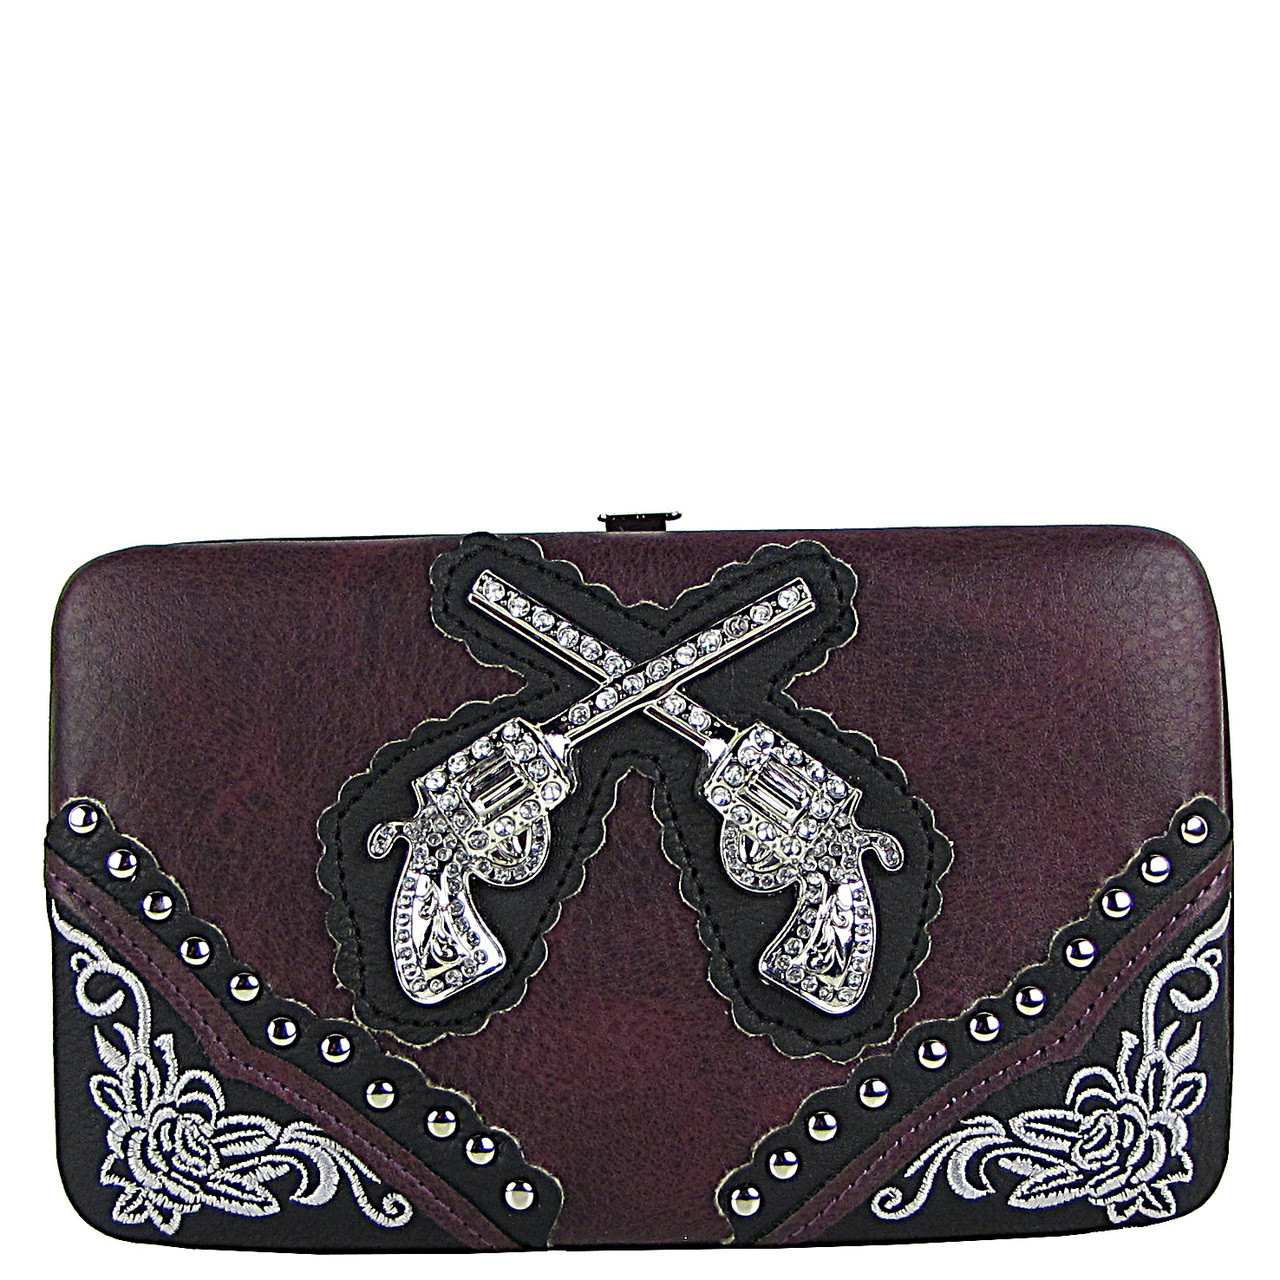 PURPLE WESTERN STITCHED RHINESTONE PISTOLS LOOK FLAT THICK WALLET FW2-1234PPL